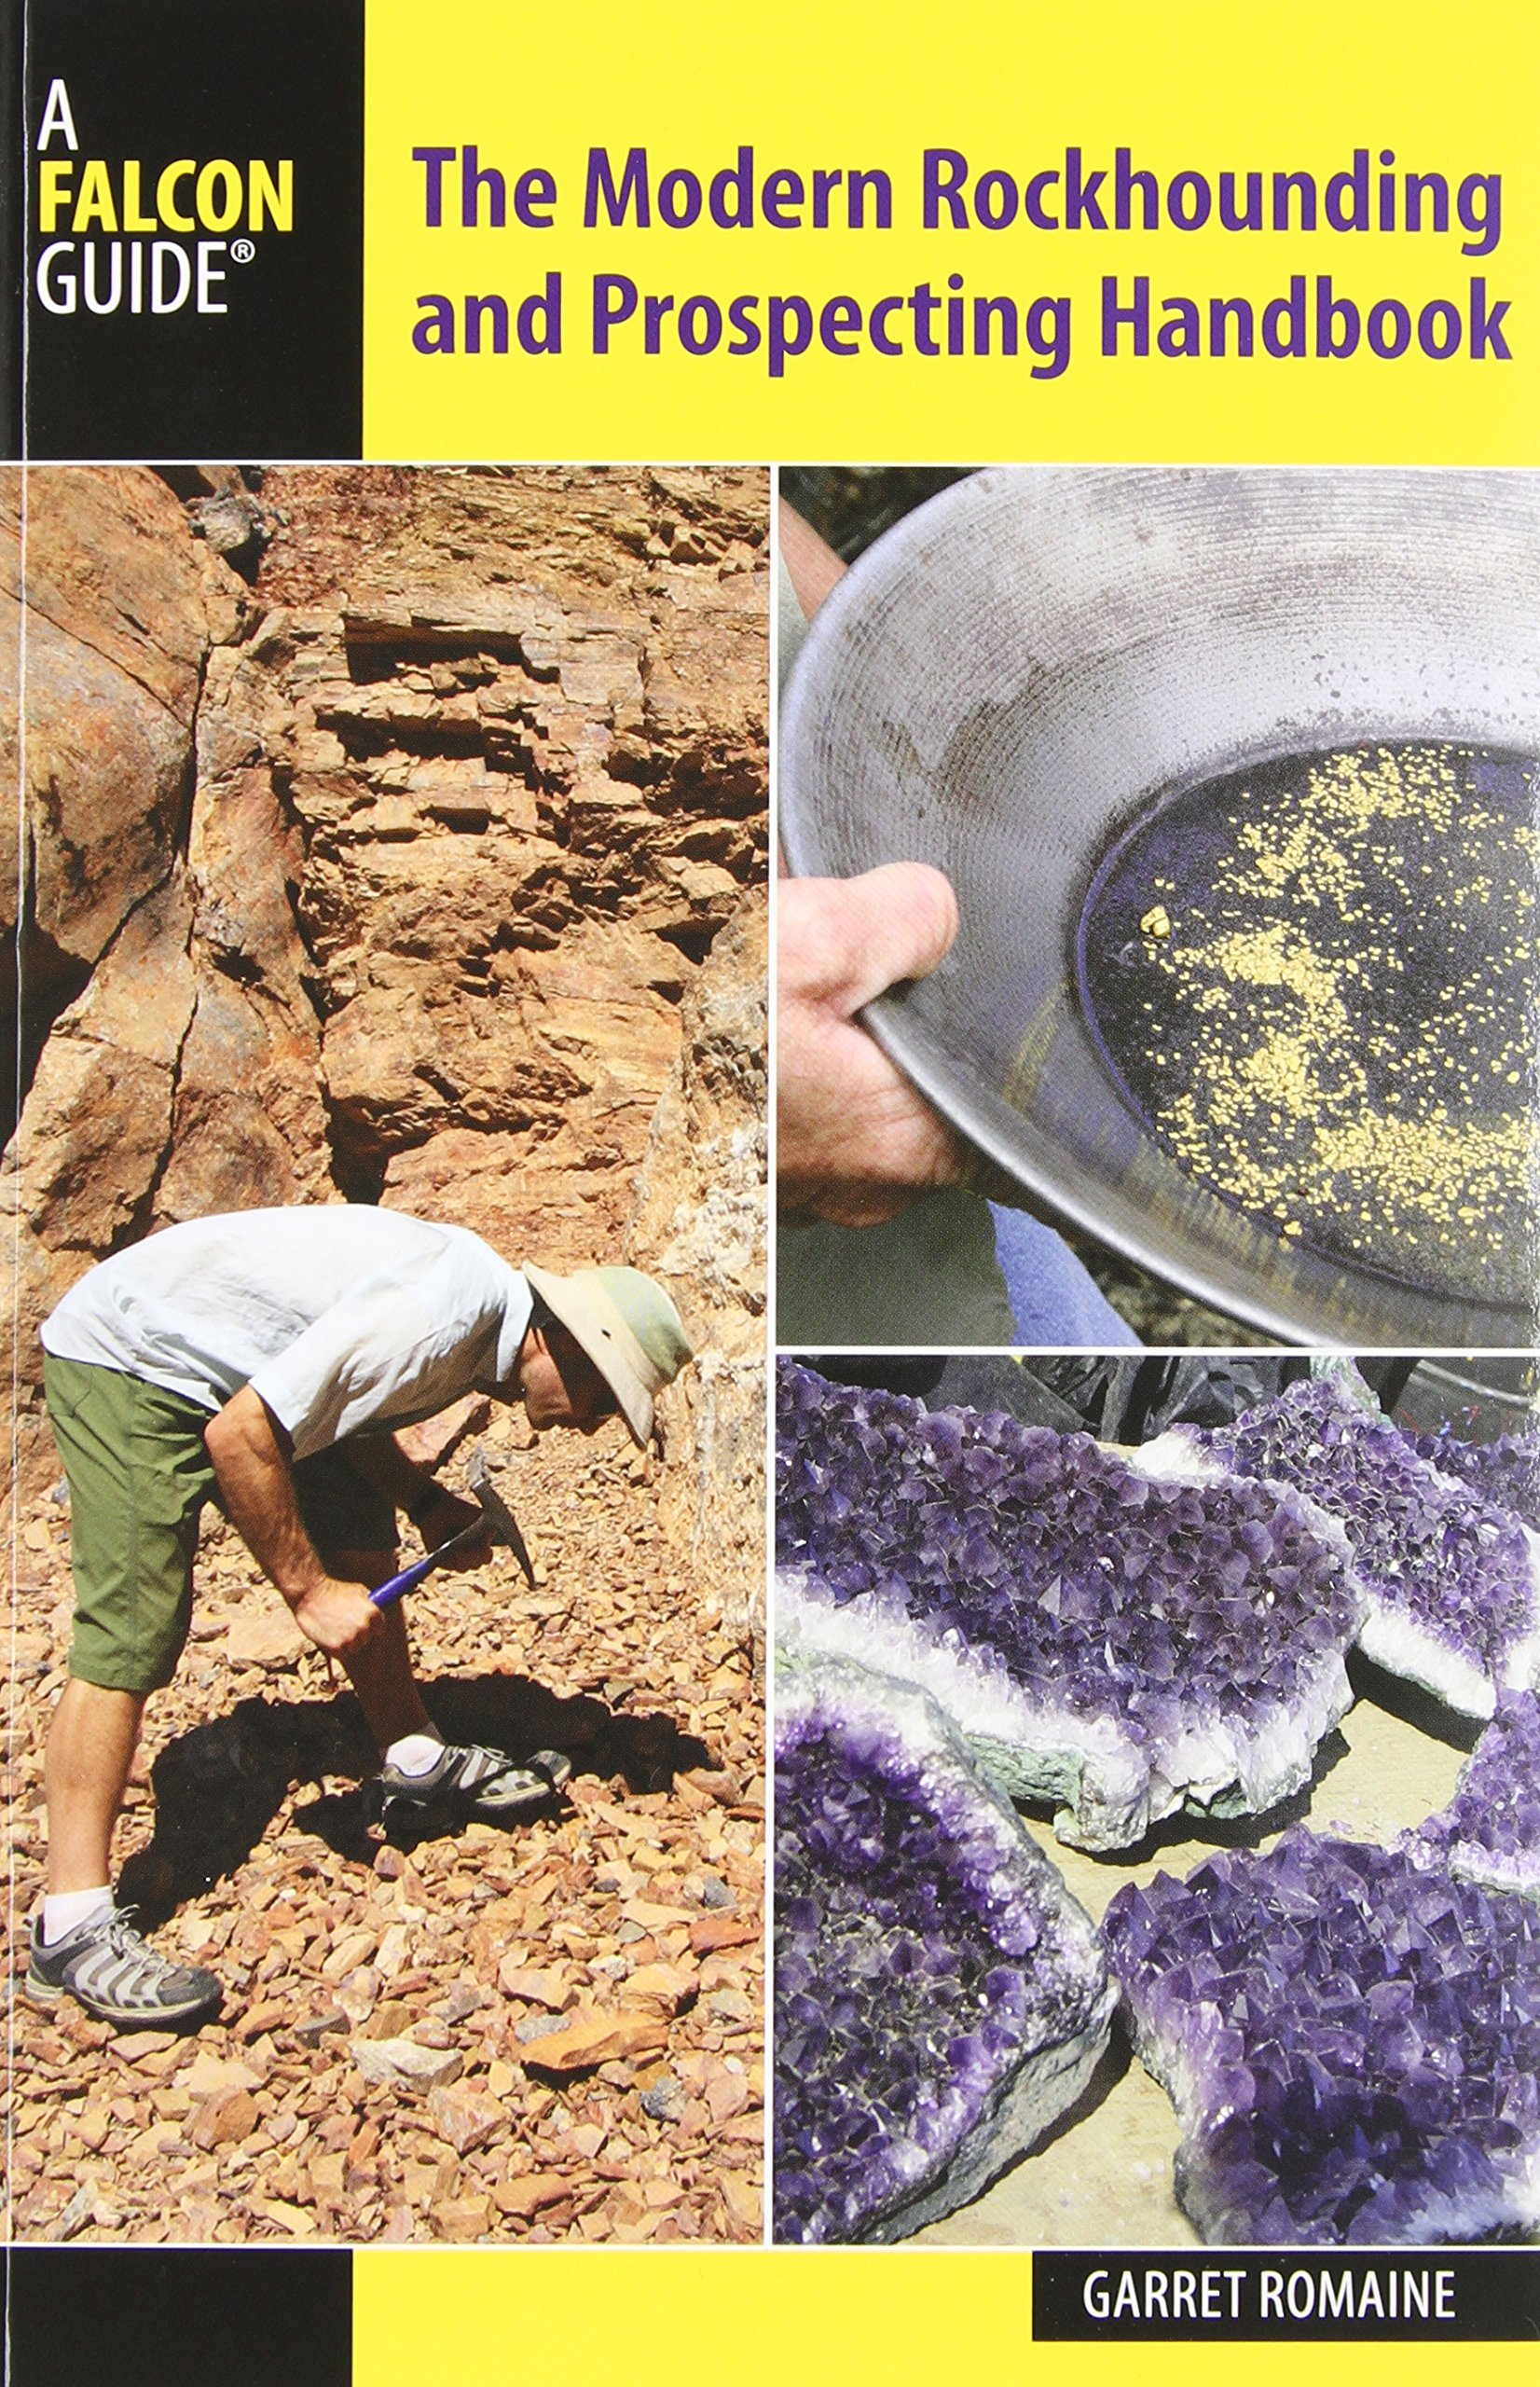 Modern Rockhounding and Prospecting Handbook (Falcon Guides) by garret romaine